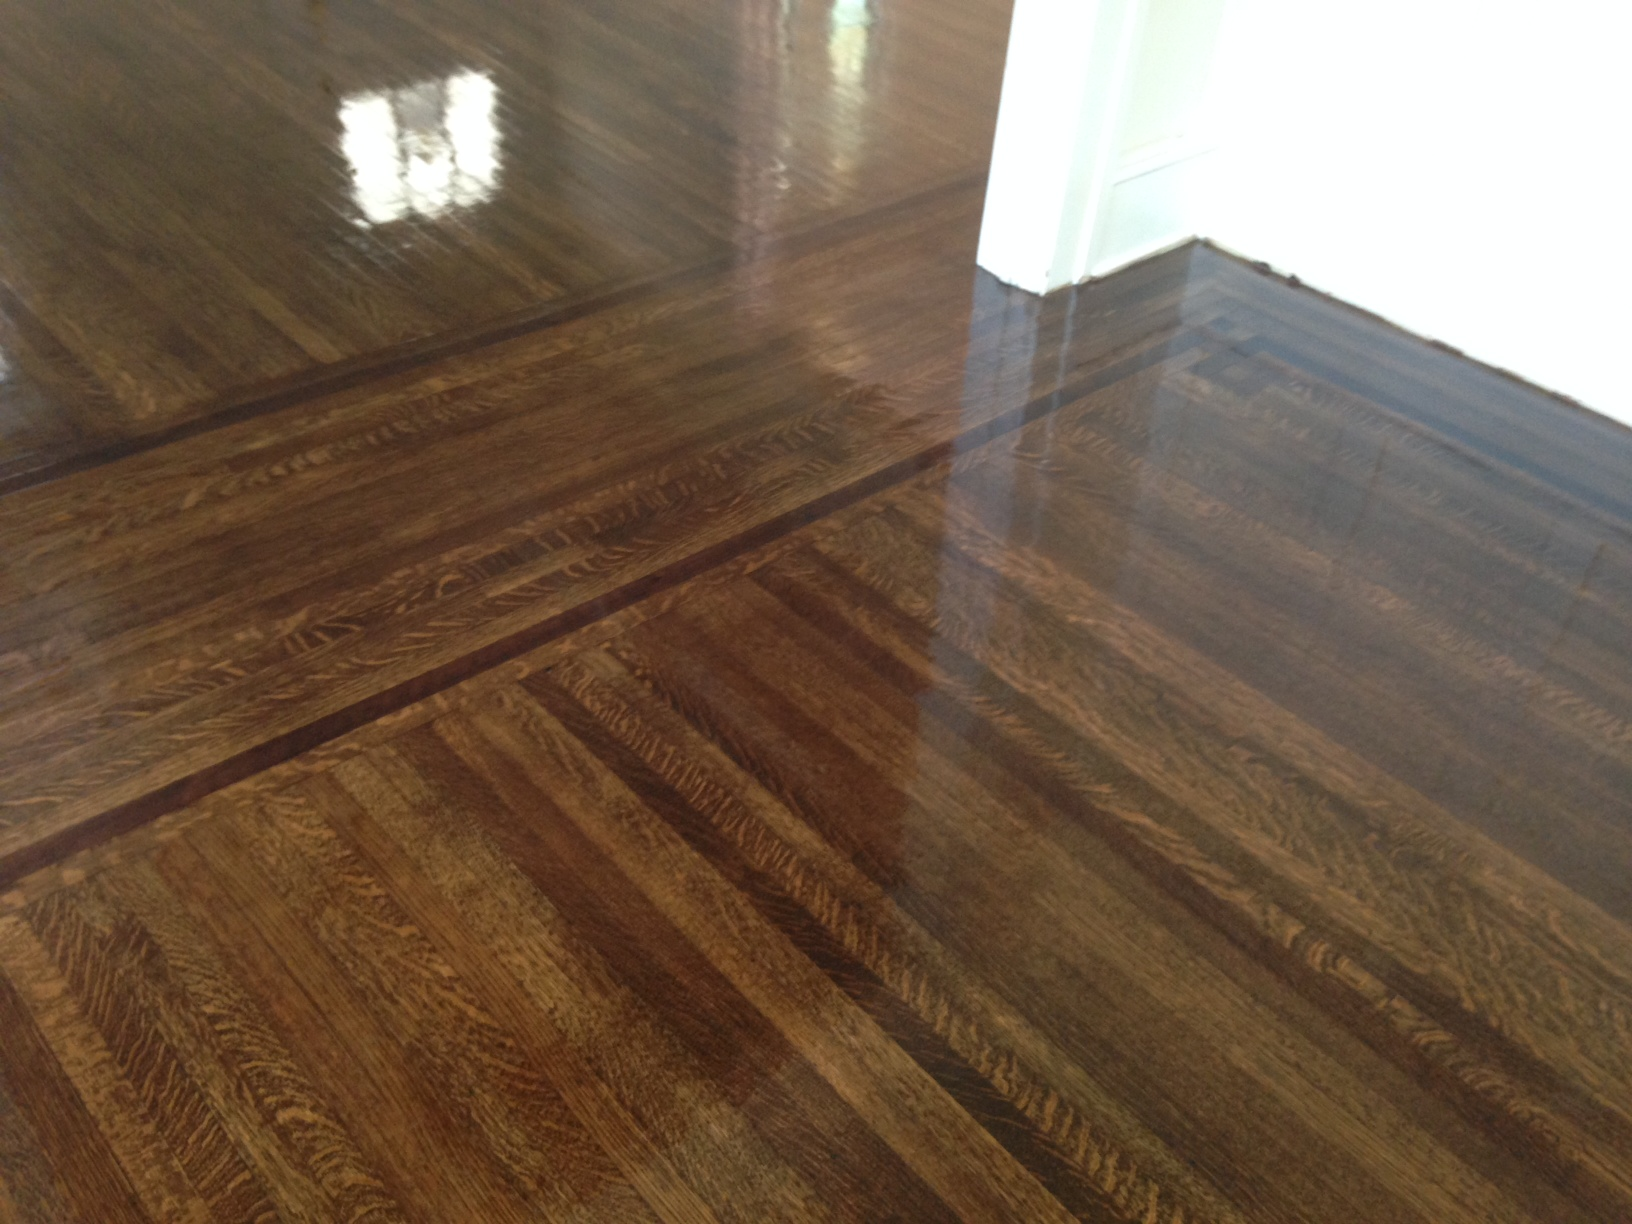 Refinished Old Hardwood Floors Shine As Finish Dries